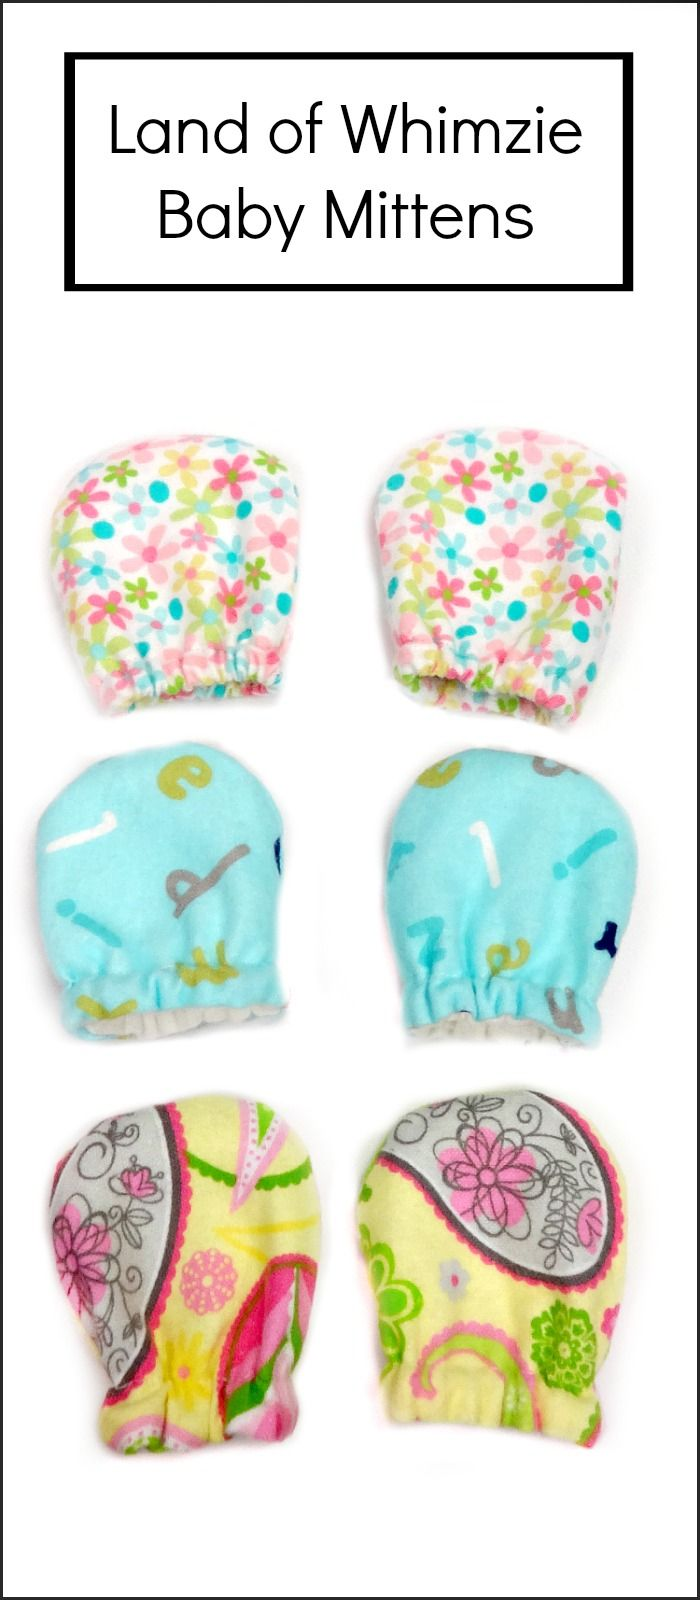 Baby mitten tutorial uses land of whimzie fabric by fabric baby mitten tutorial uses land of whimzie fabric by fabric editions jeuxipadfo Image collections